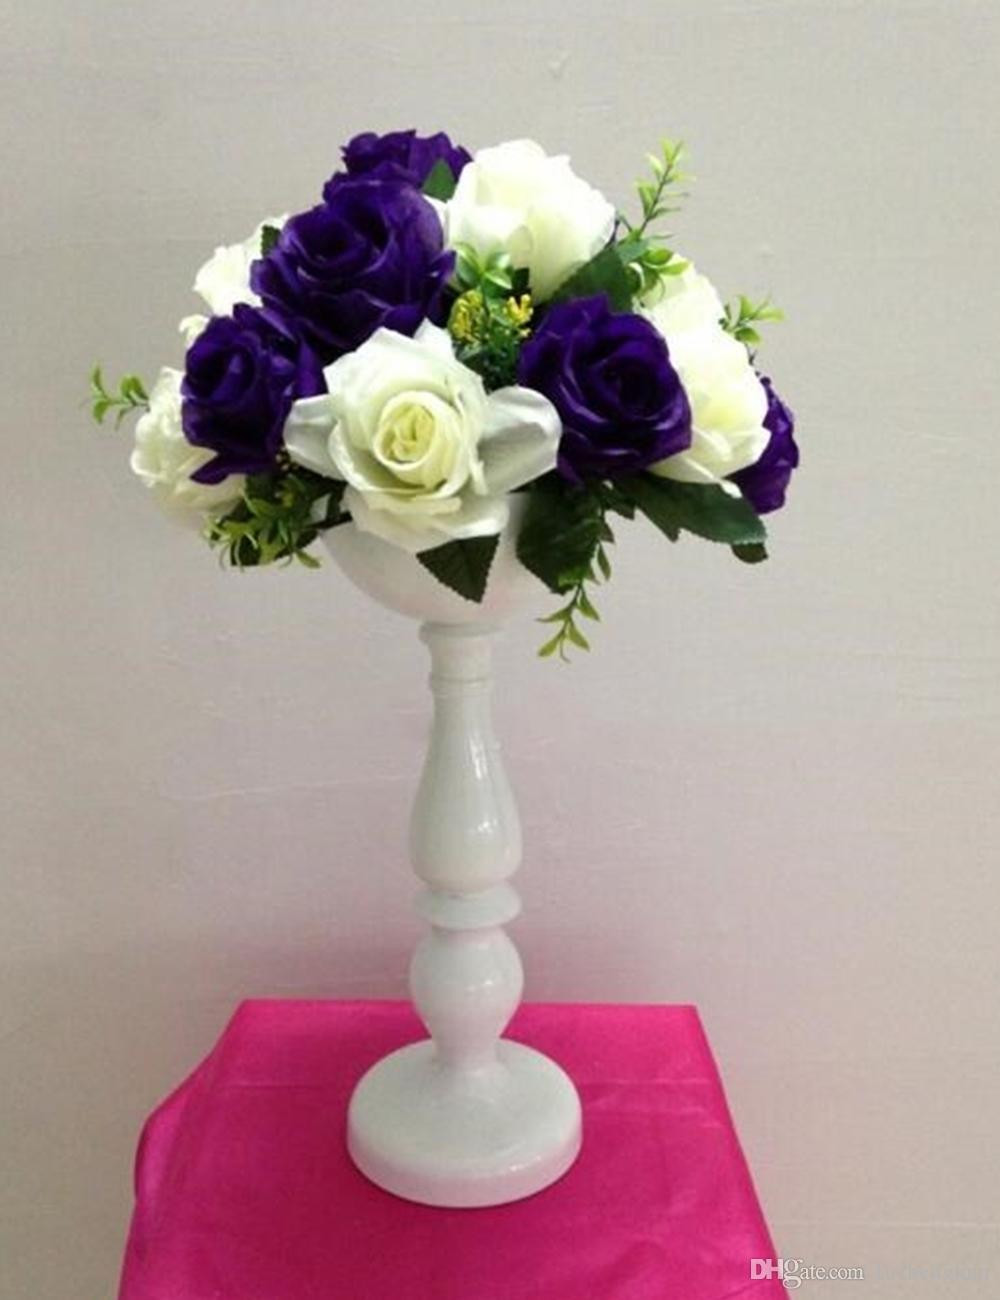 flowers with vase free delivery of new arrive 37 cm tall white metal flower vase wedding table inside new arrive 37 cm tall white metal flower vase wedding table centerpiece event home decor hotel road lead flower vase road lead online with 237 99 piece